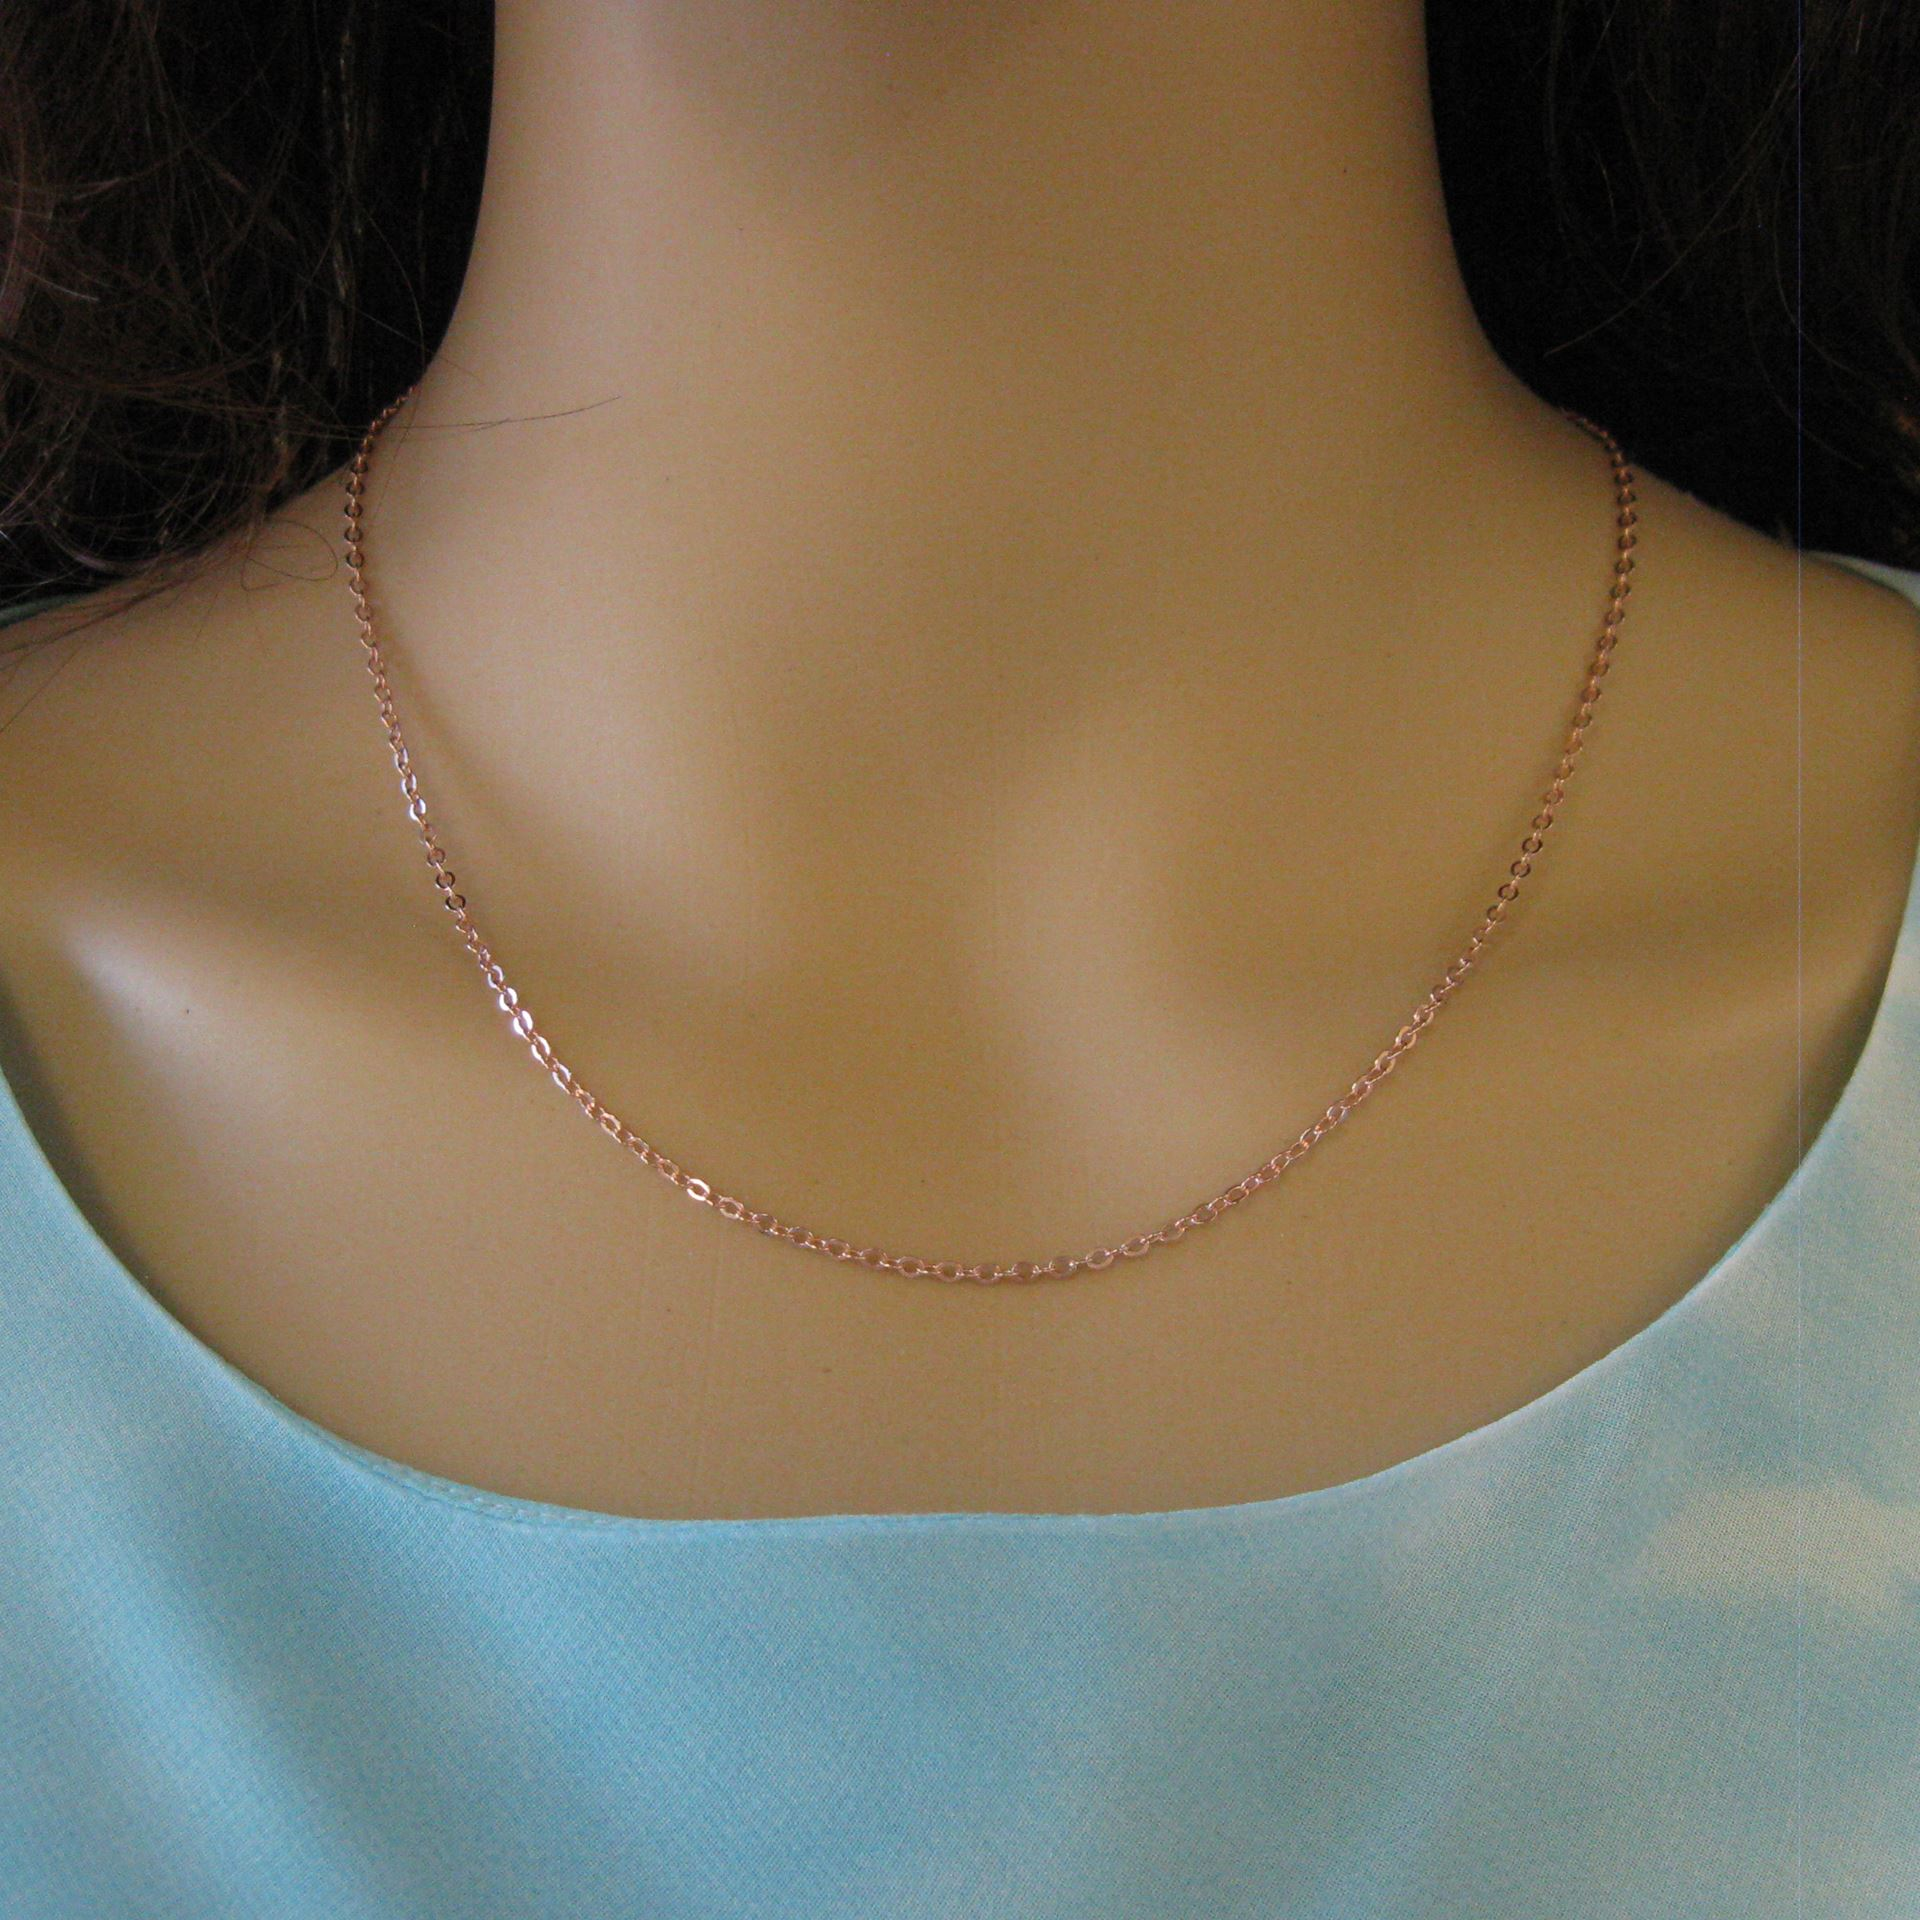 Rose Gold plated Sterling Silver Necklace Chain - Bracelet Chain - Anklet Chain - 2.3mm Strong Flat Cable -All Sizes